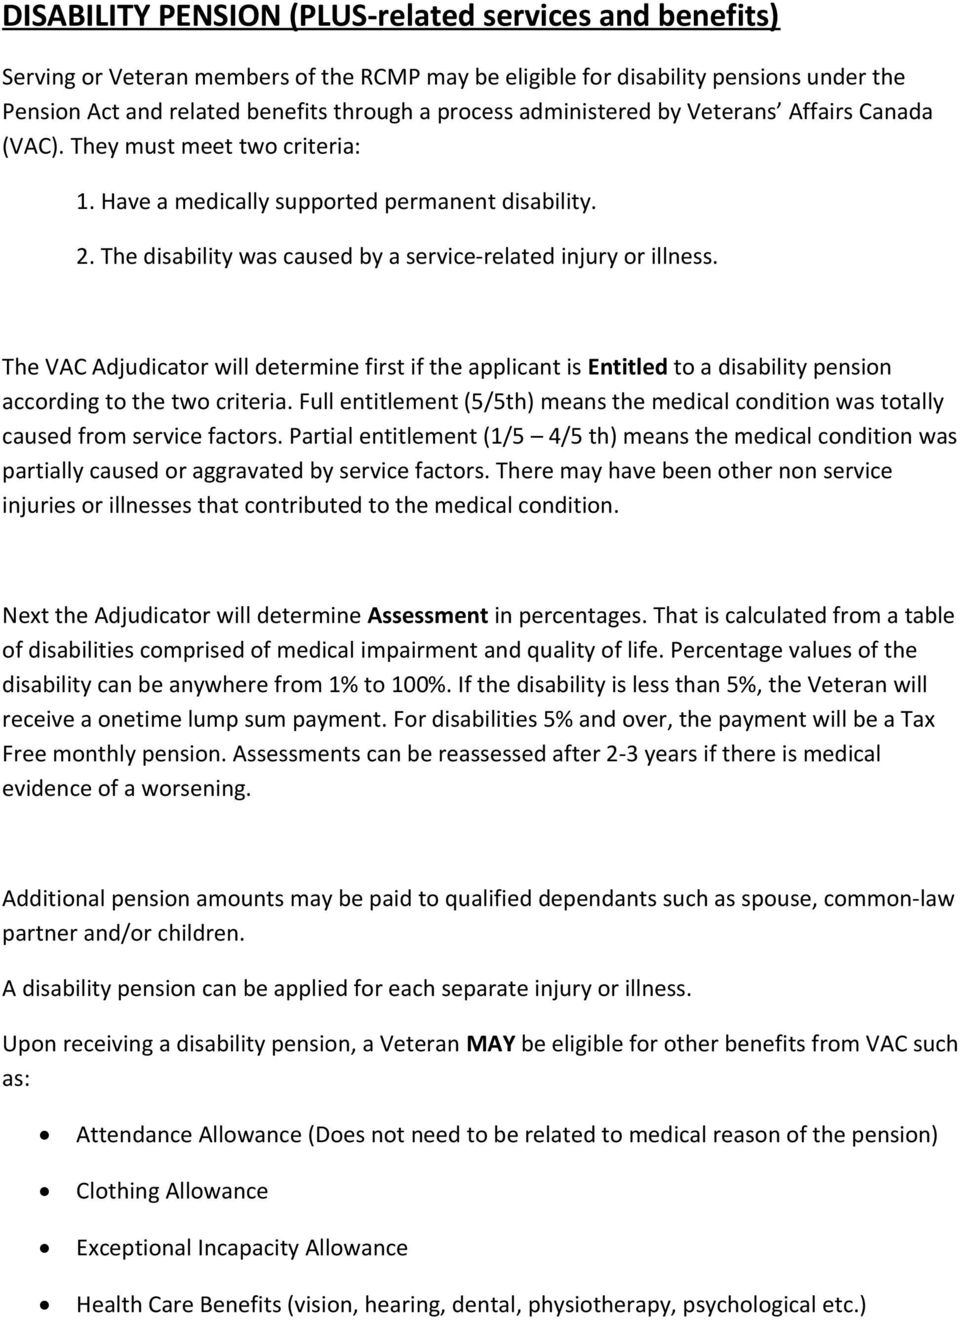 The VAC Adjudicator will determine first if the applicant is Entitled to a disability pension according to the two criteria.